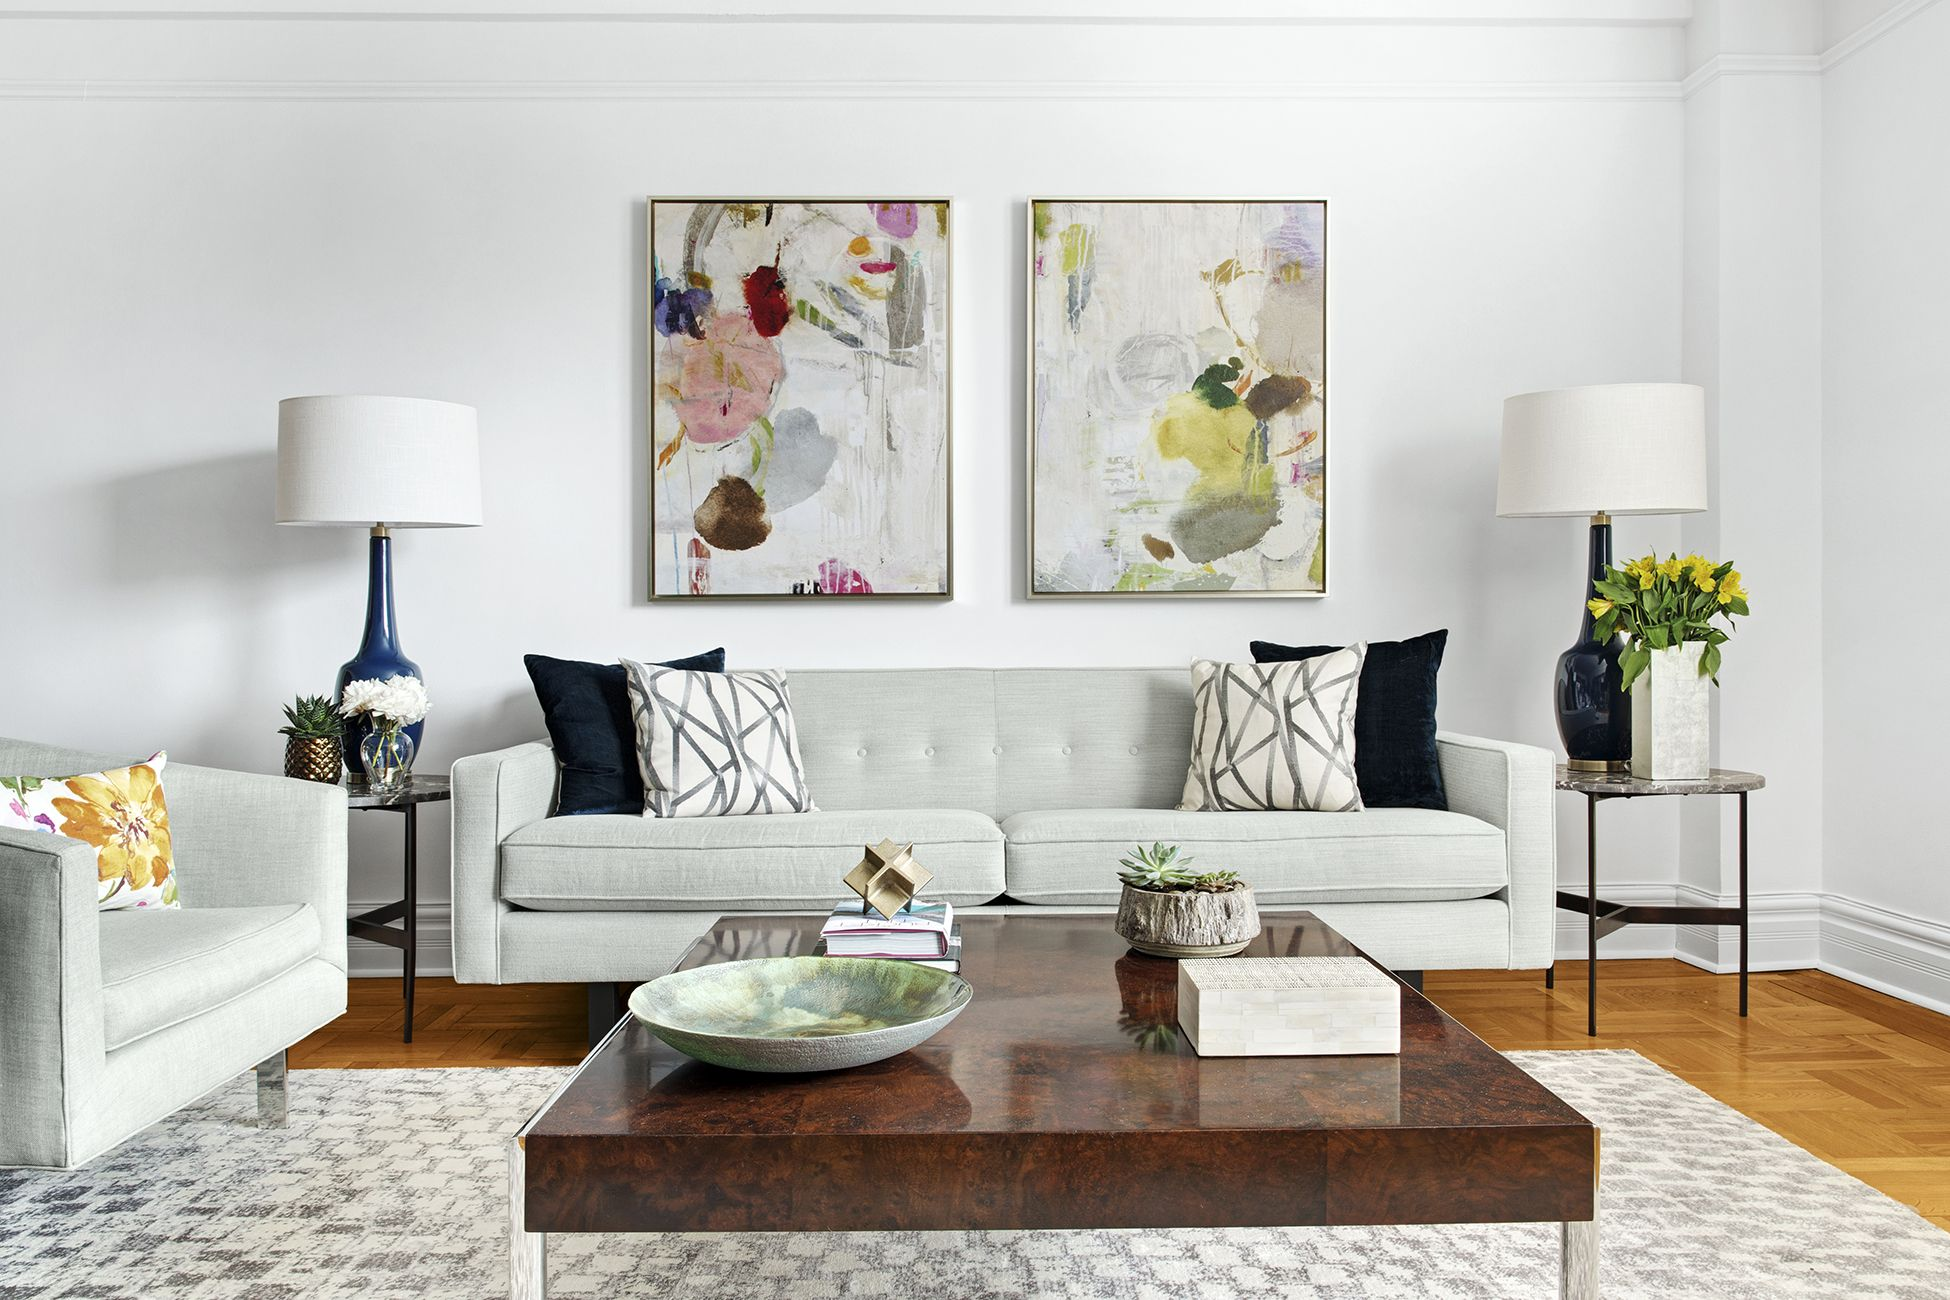 Top nyc interior designers living room design ideas throw pillows decor aid also  contemporary apartment transformed for the now in best of rh pinterest